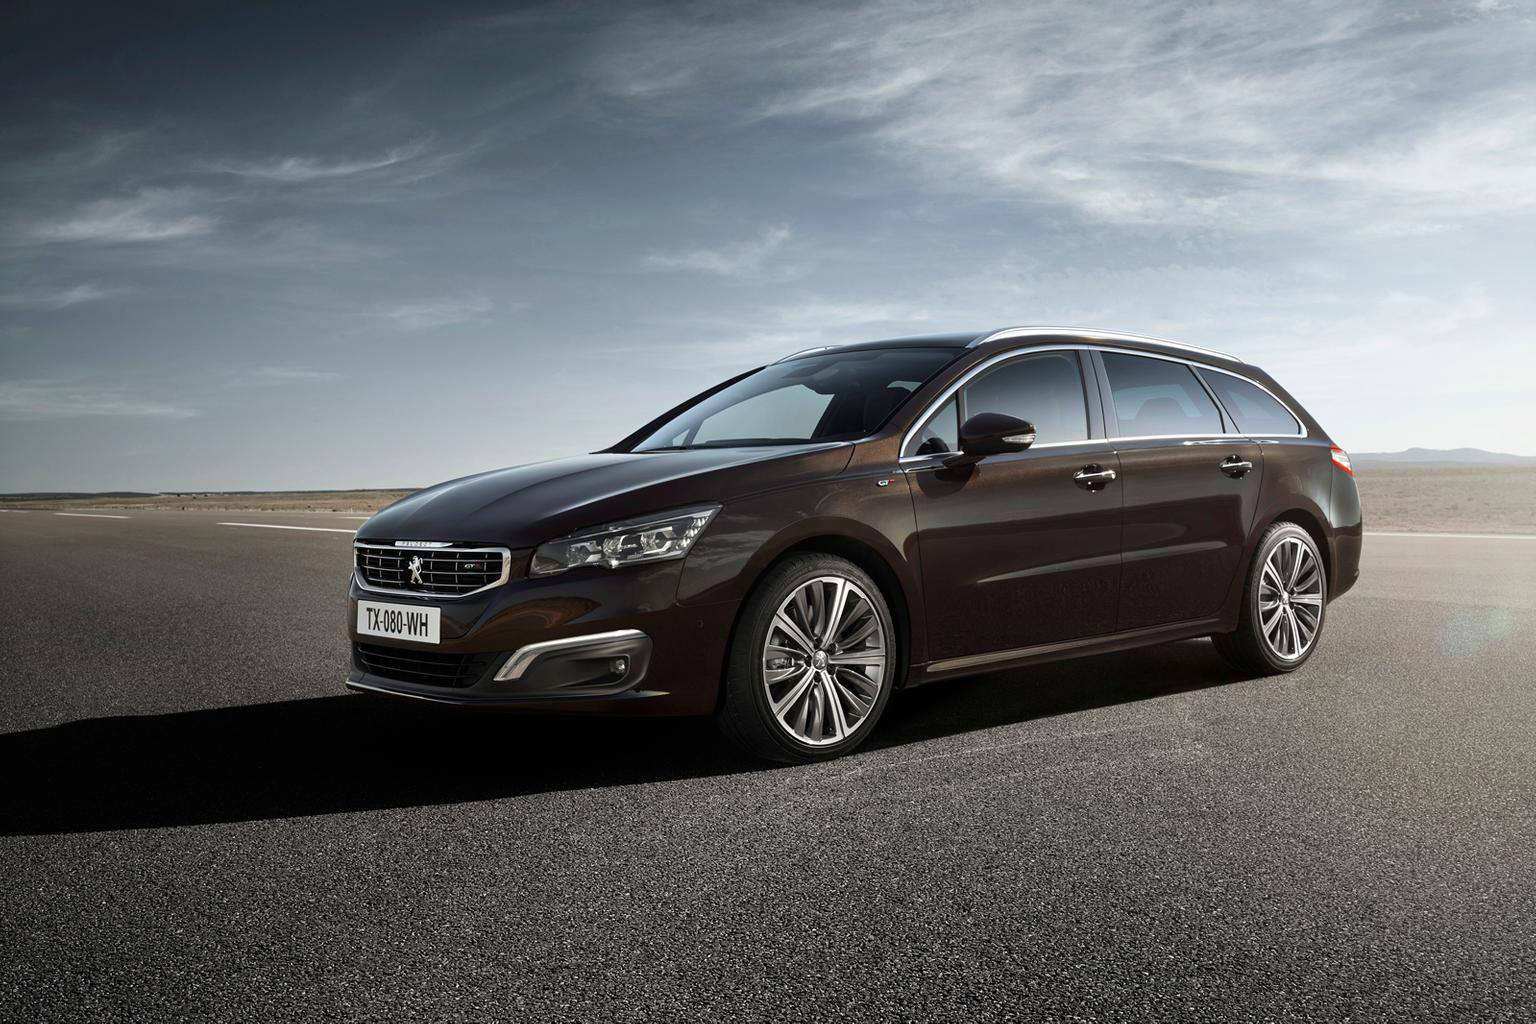 2014 peugeot 508 sw review | what car?